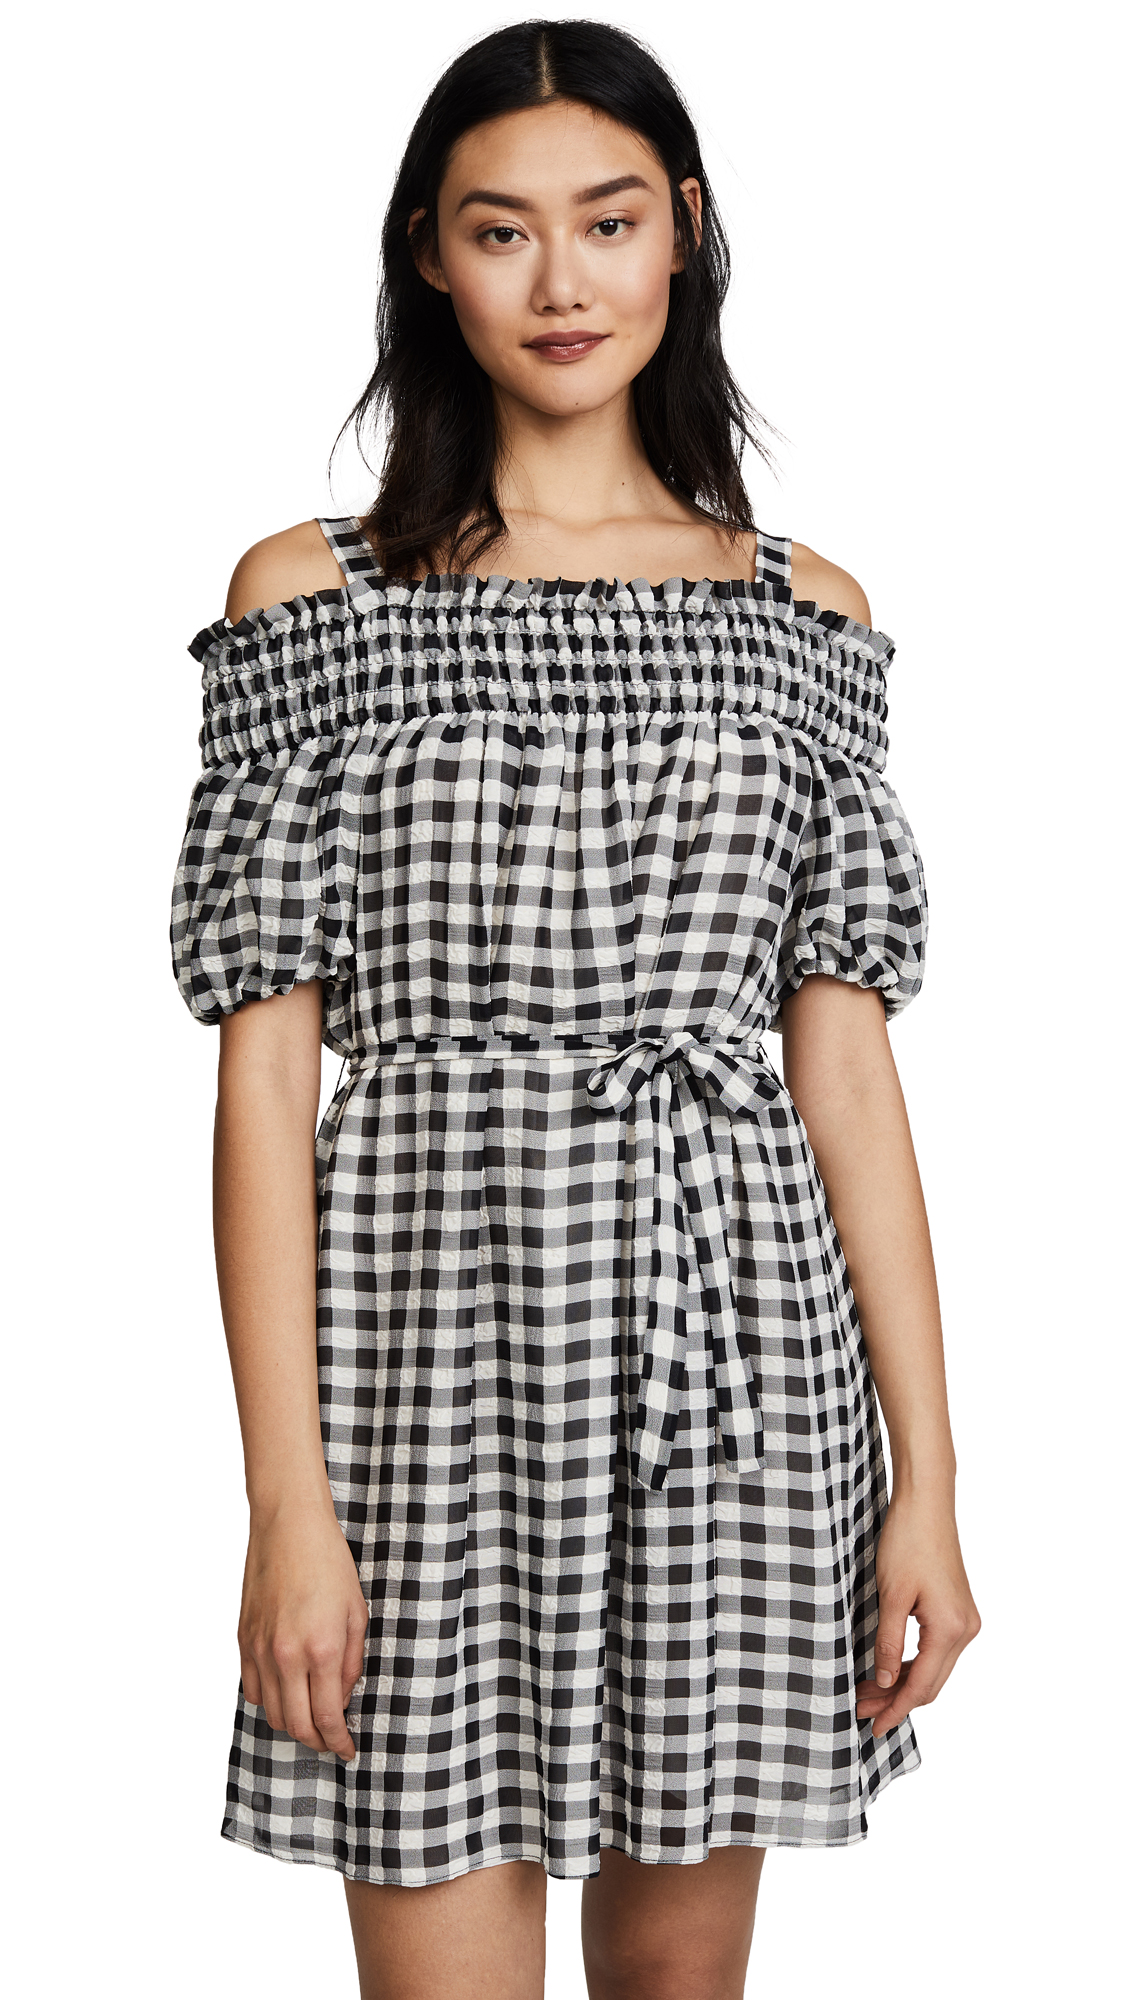 Boutique Moschino Gingham Dress - Black/White